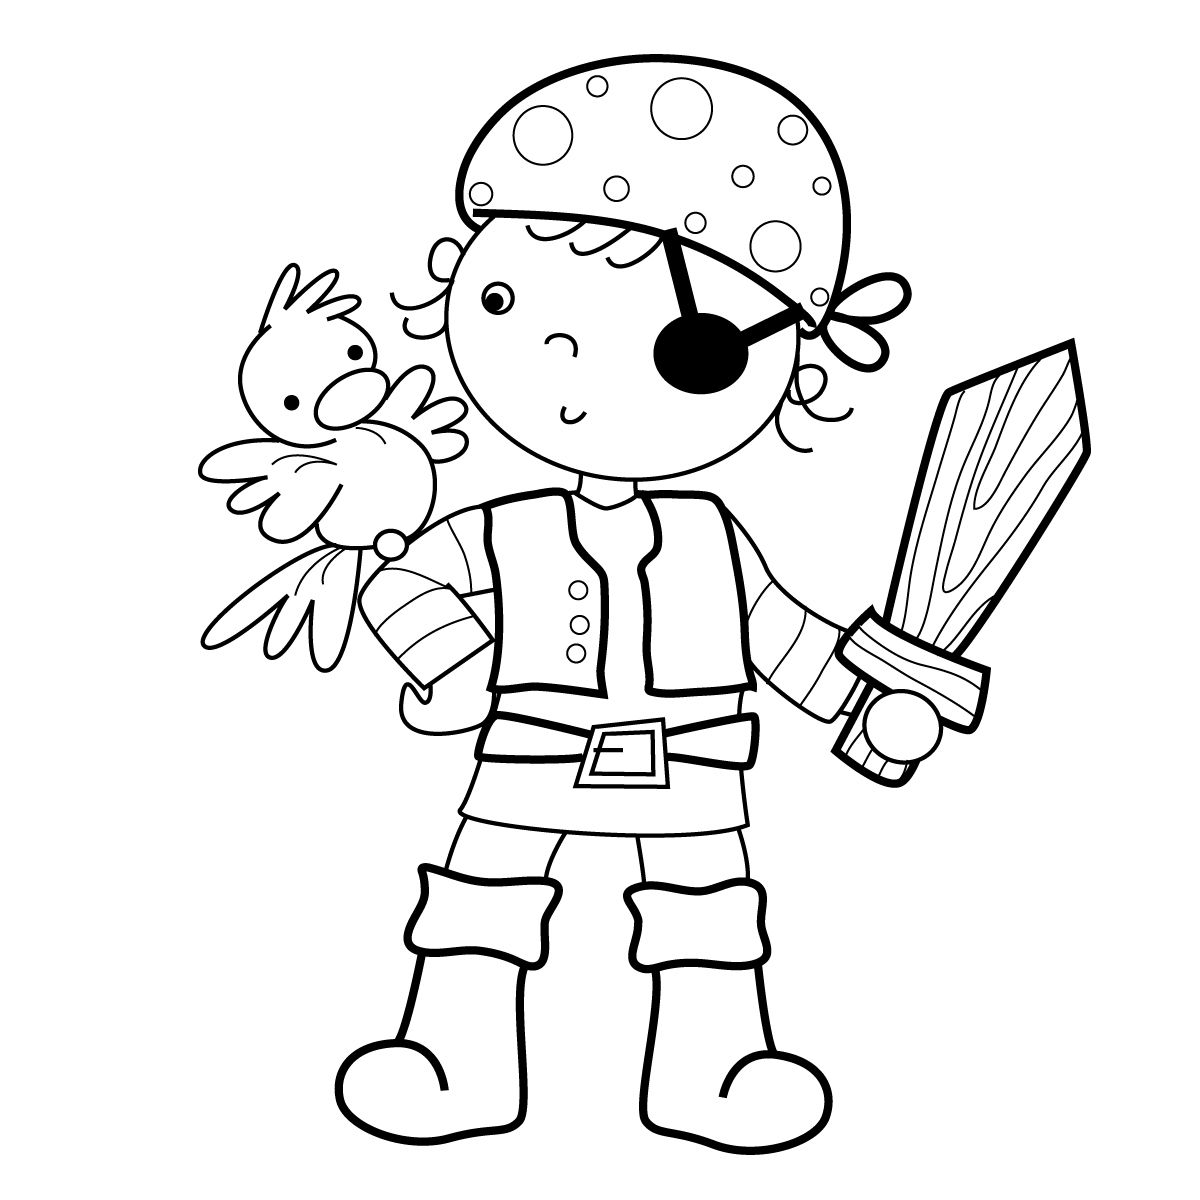 marisa straccia scan n cut pirate coloring pages